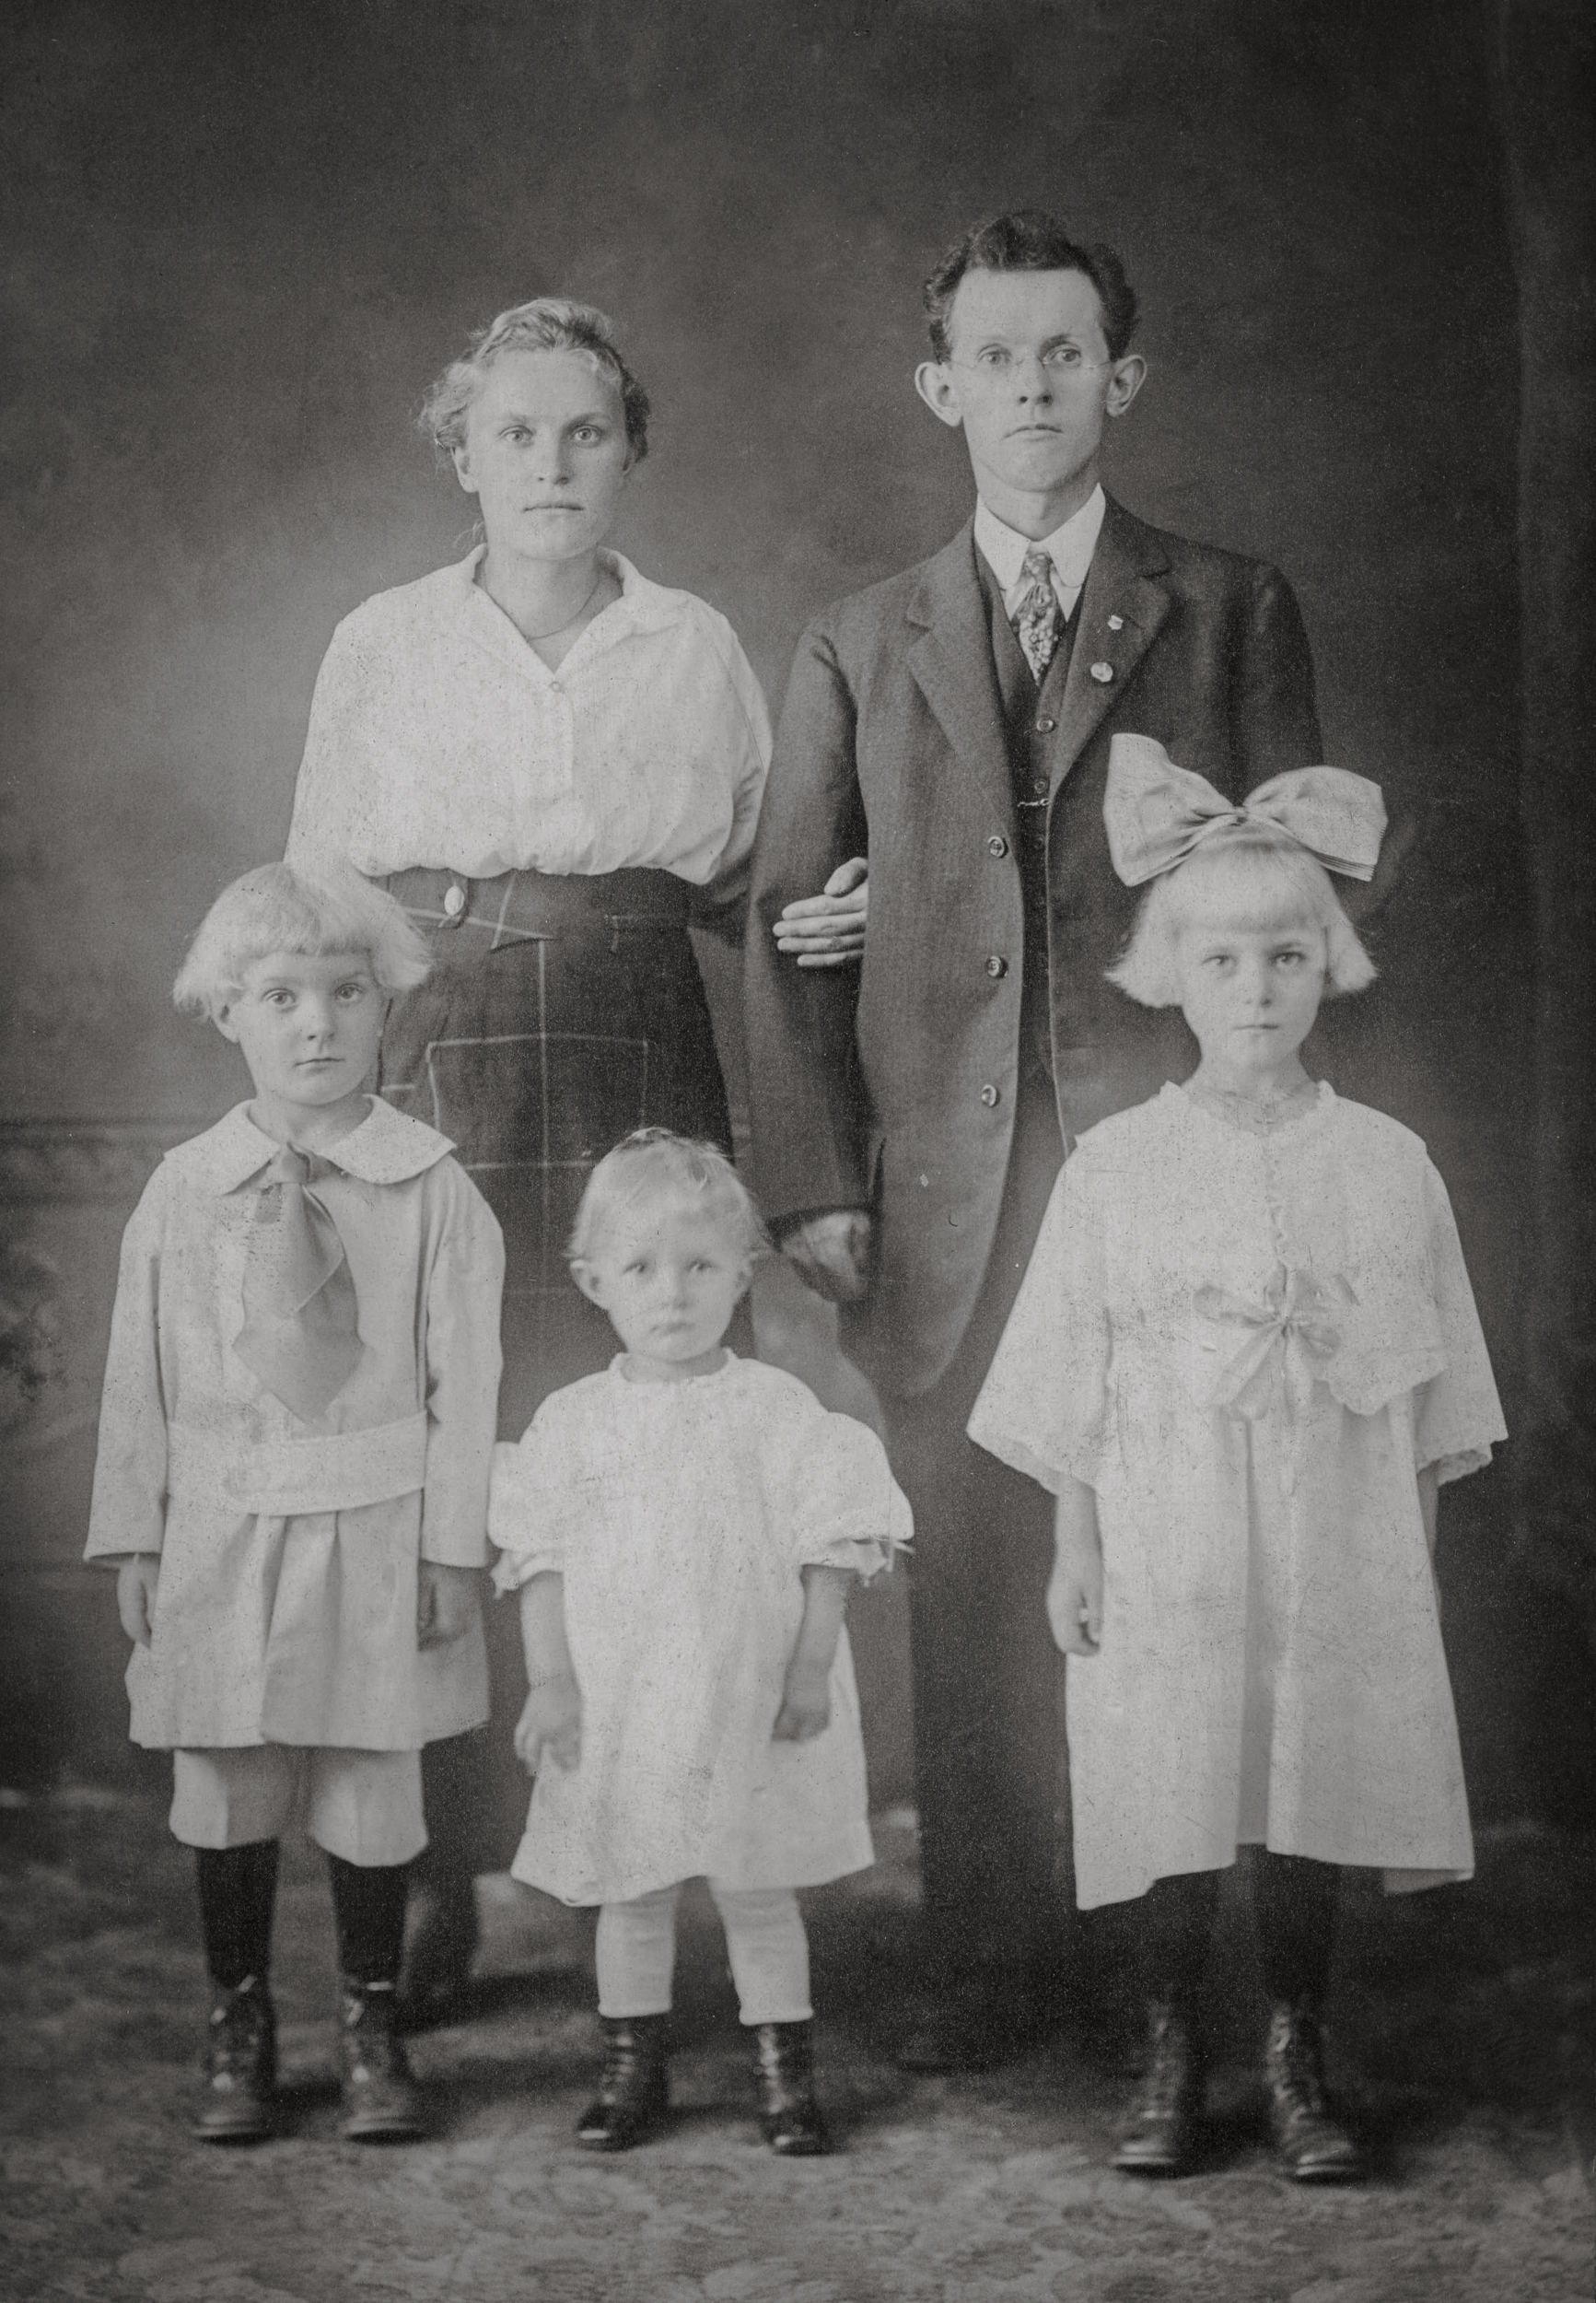 The Jacob Guterch Family ca 1918